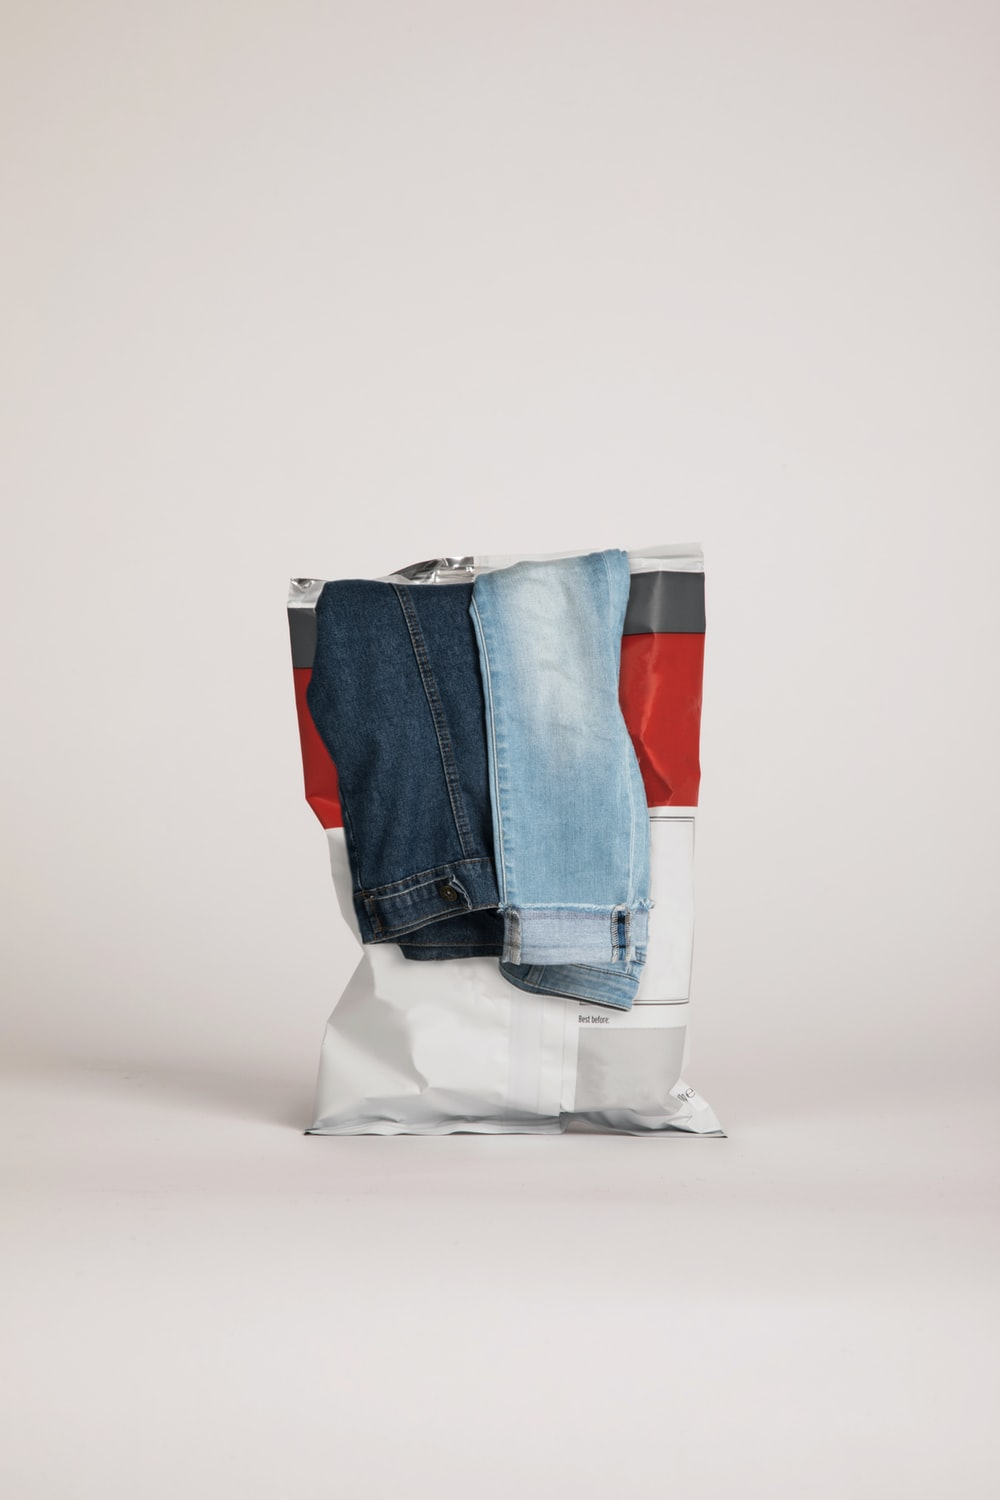 two blue and gray denim jeans on white plastic bag